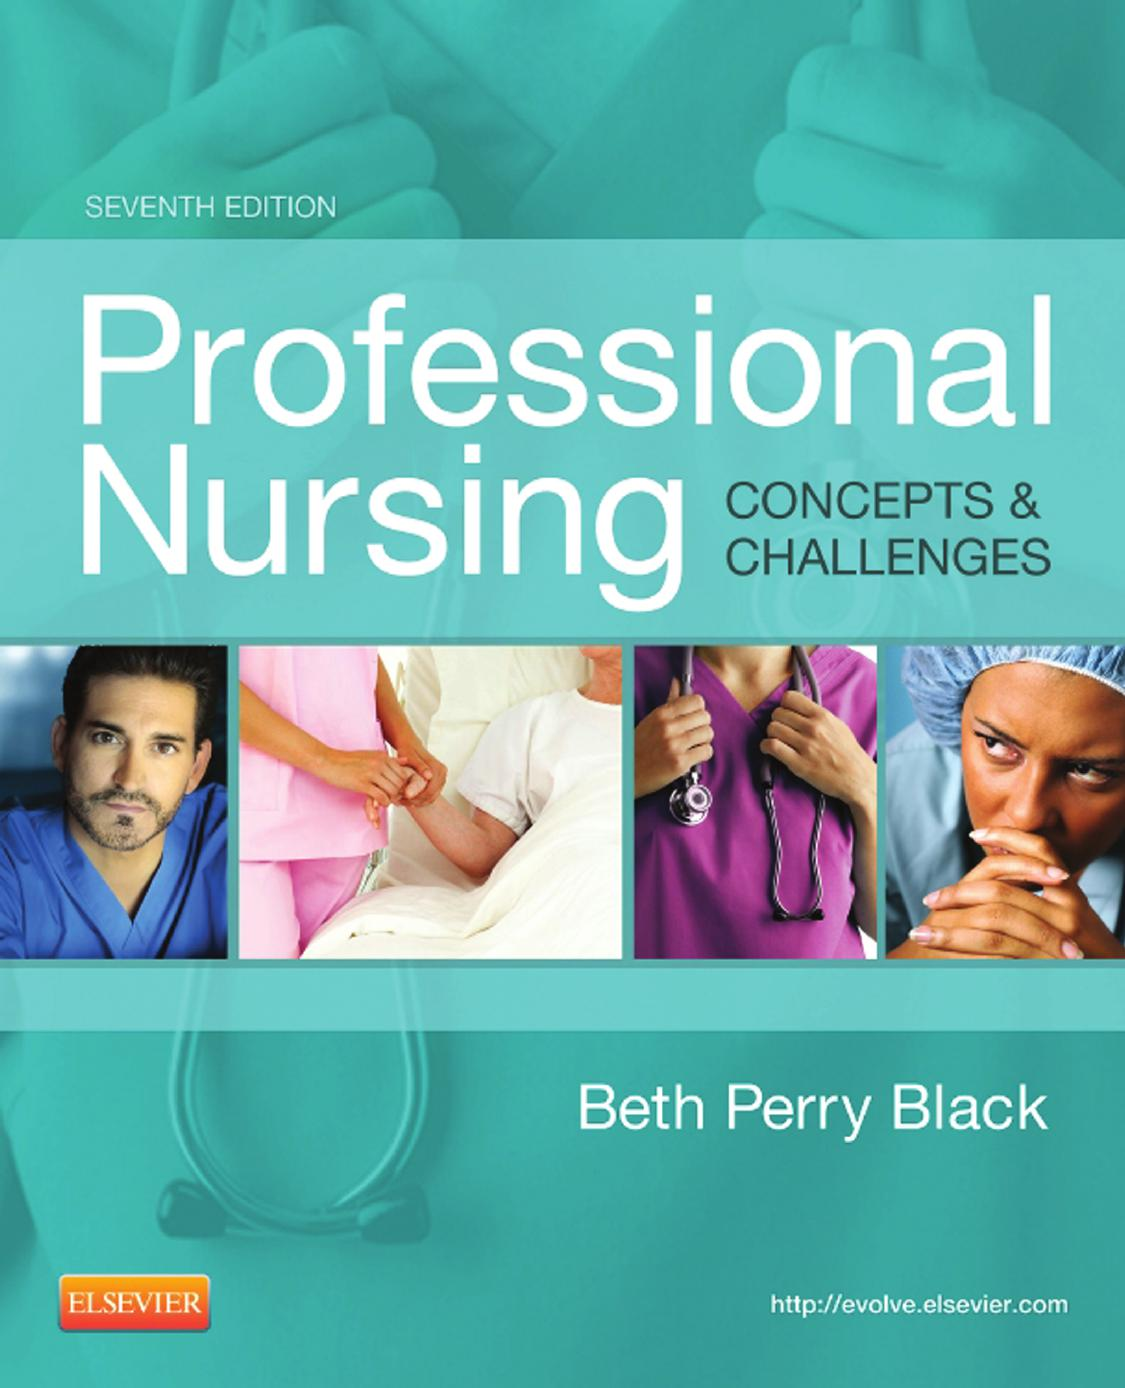 Professional Nursing Concepts & Challenges 7th Edition PDF